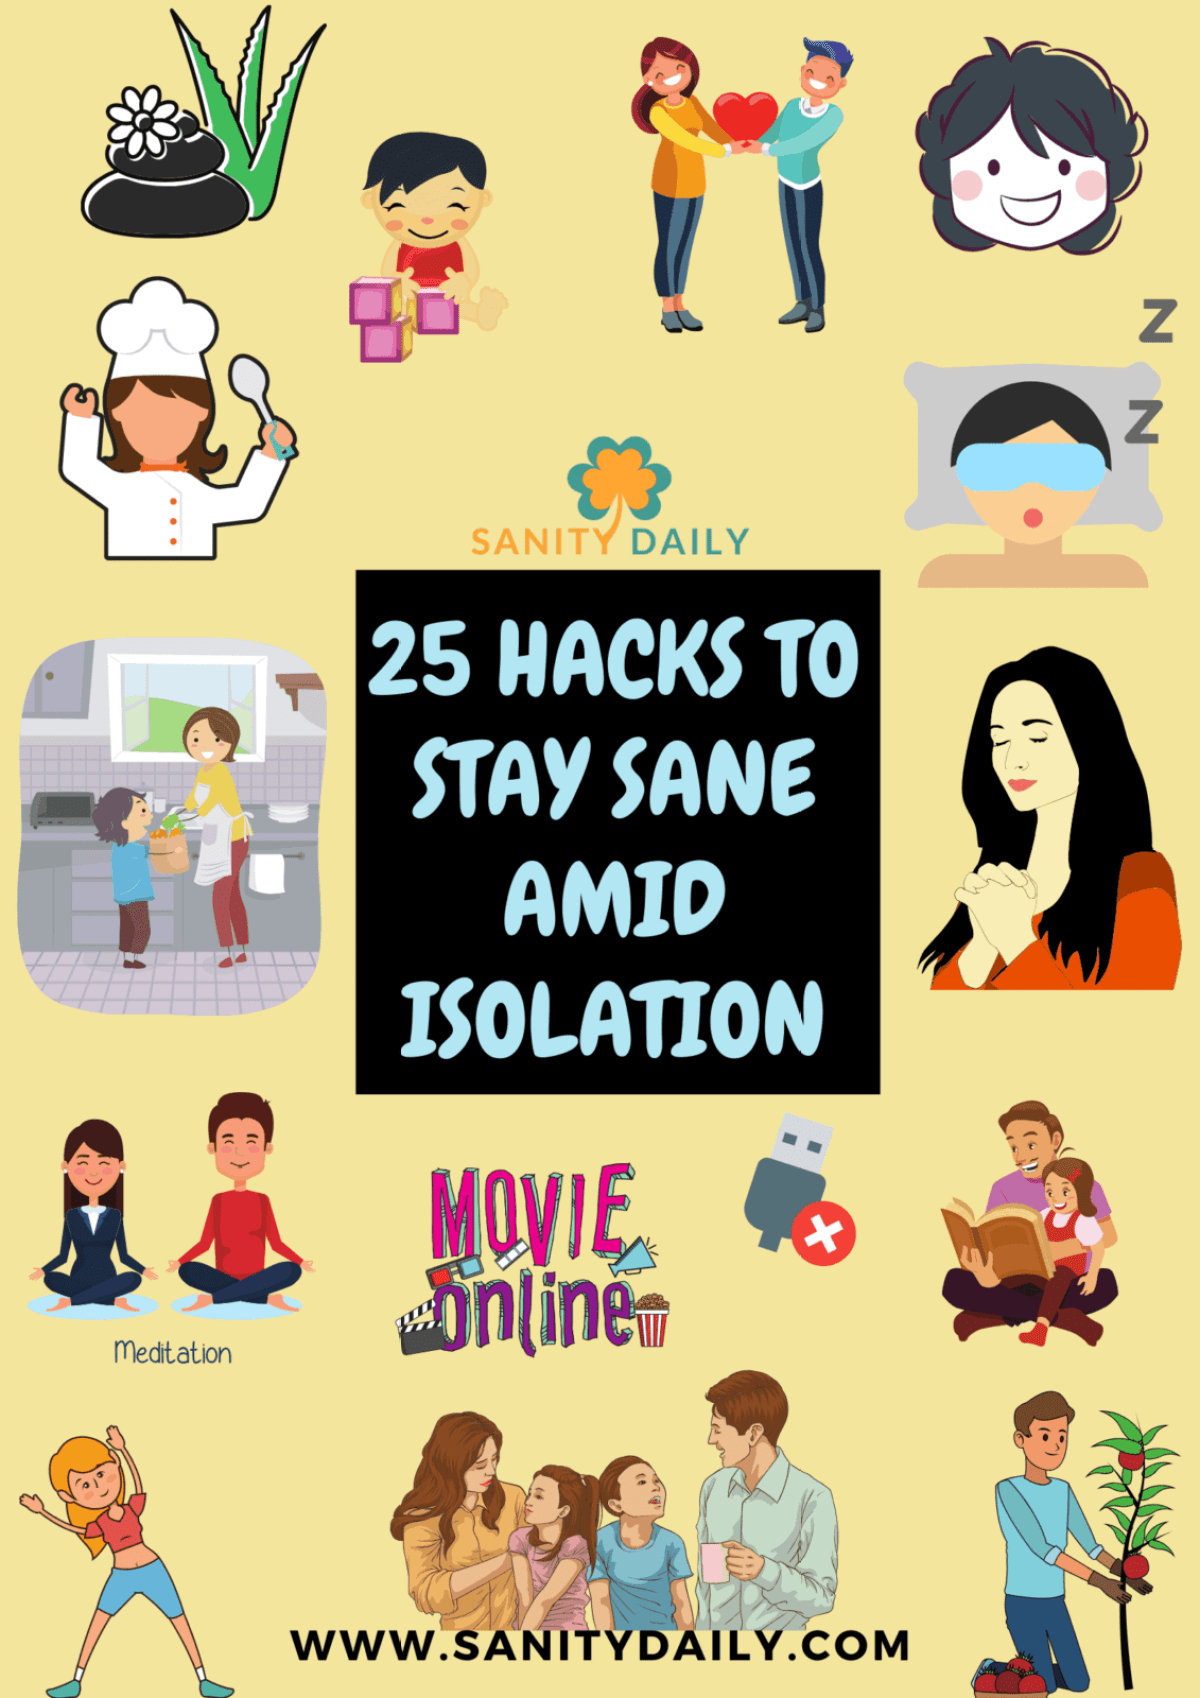 How to stay sane amid isolation